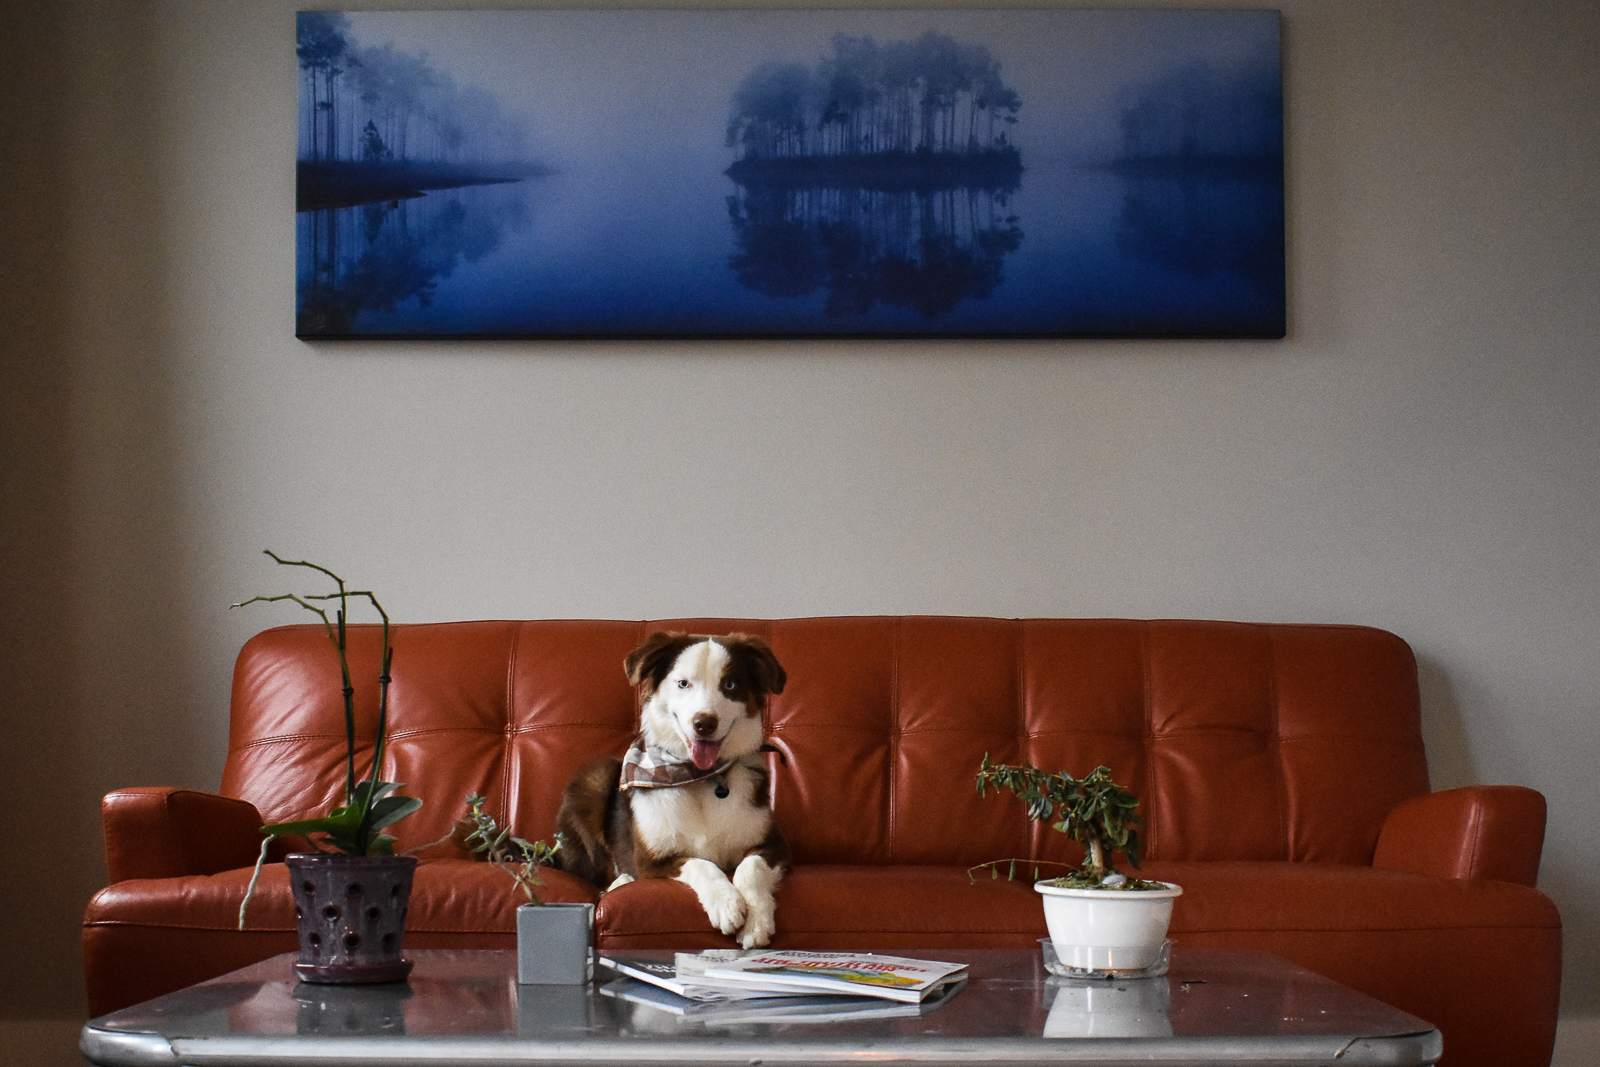 An artistic image of Sage the dog sitting on a couch